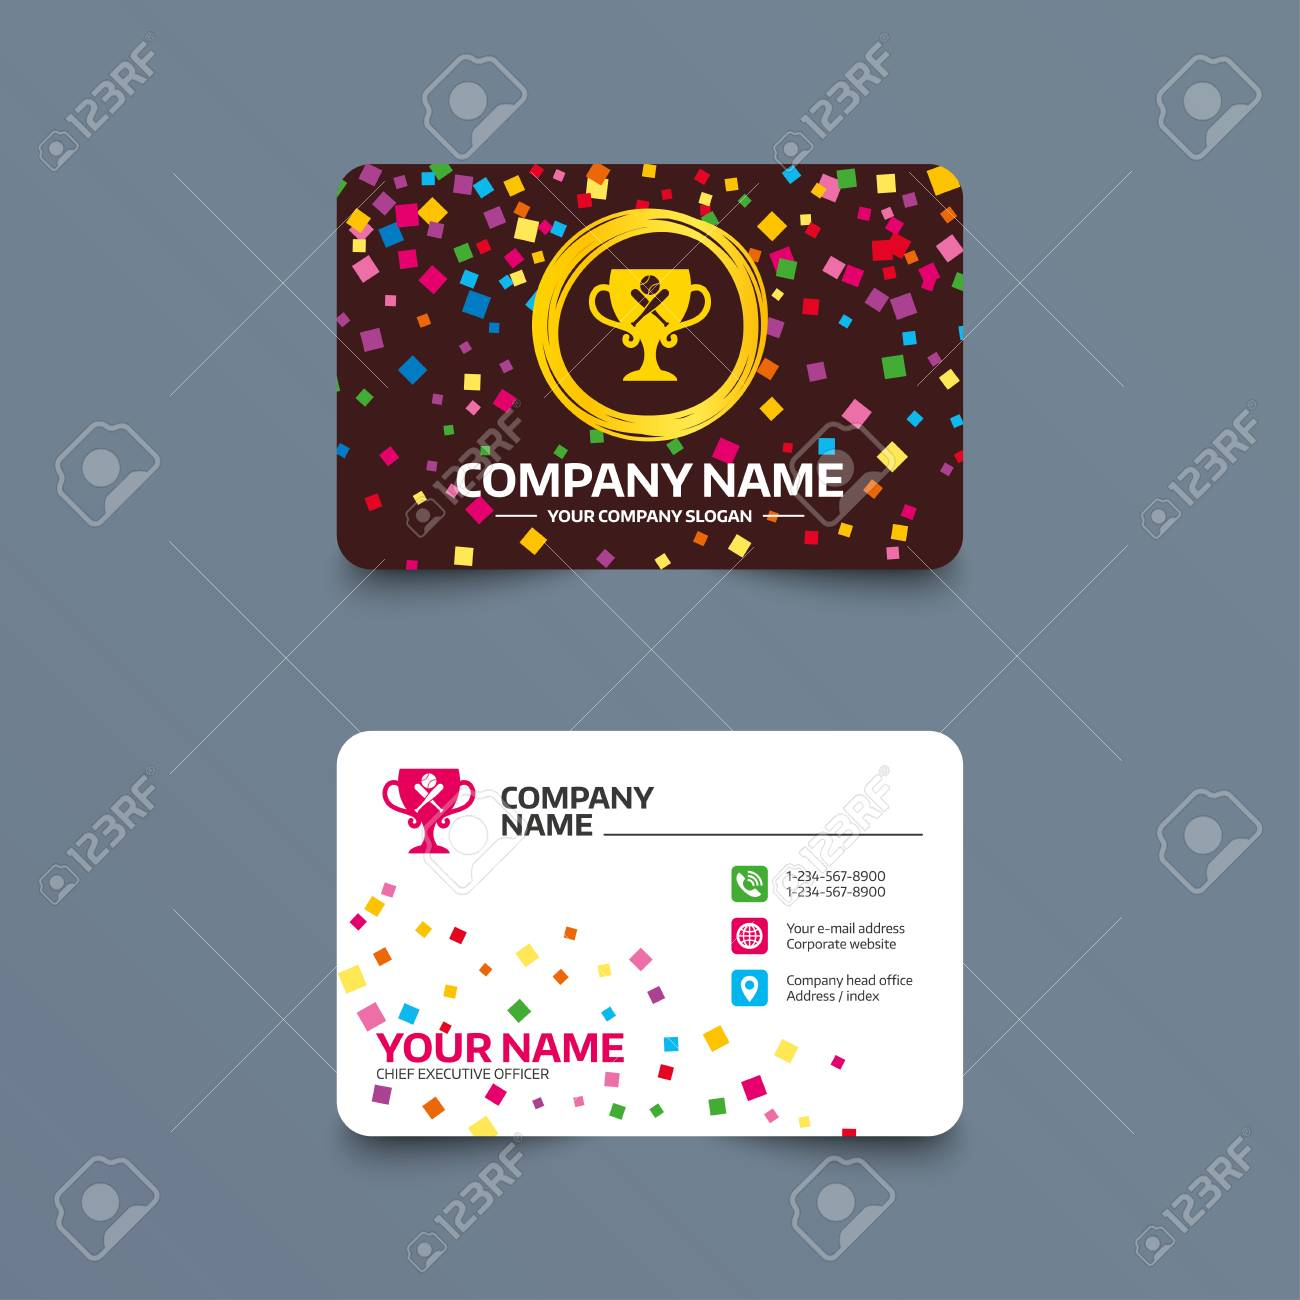 Business card template with confetti pieces baseball bats and business card template with confetti pieces baseball bats and ball sign icon sport hit colourmoves